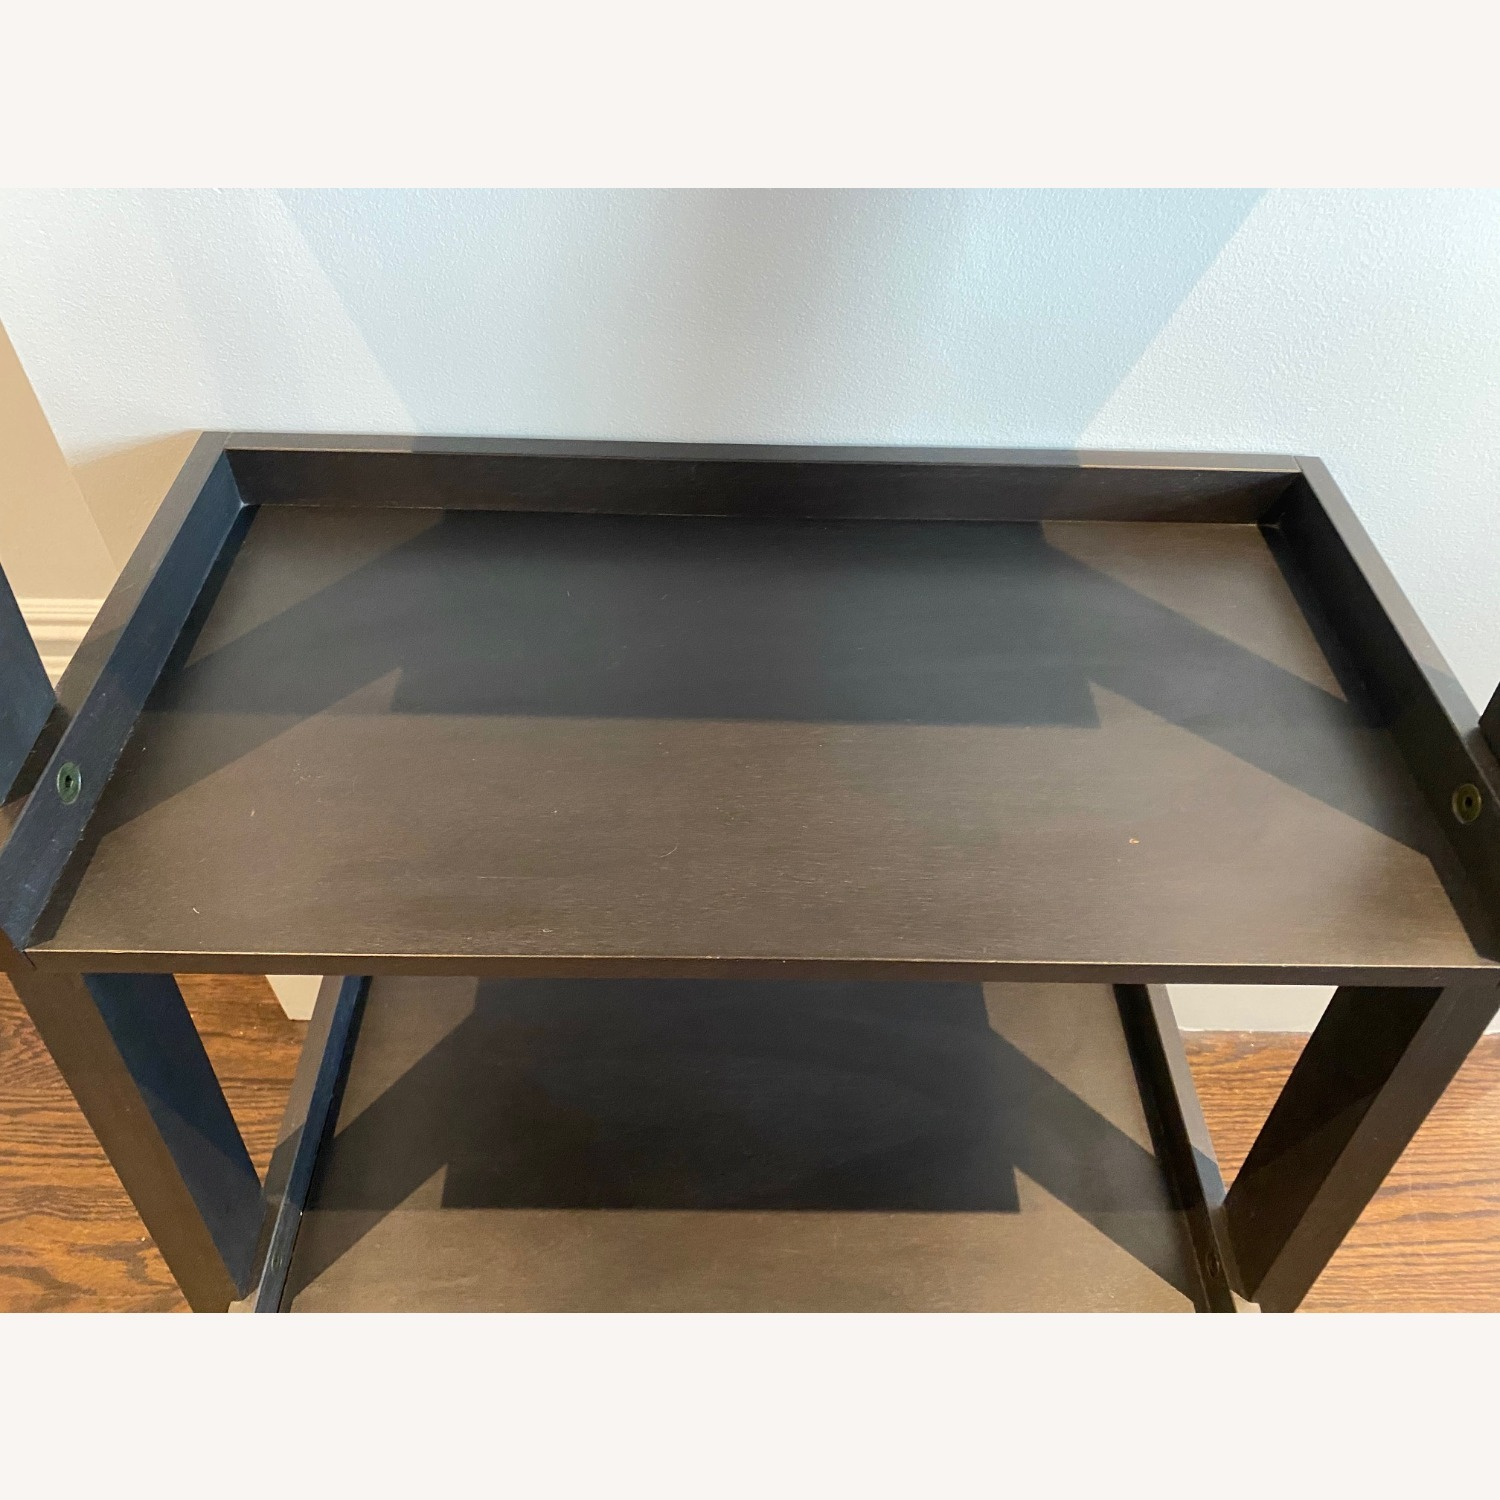 Crate and Barrel Sloane Leaning Bookcase - image-6